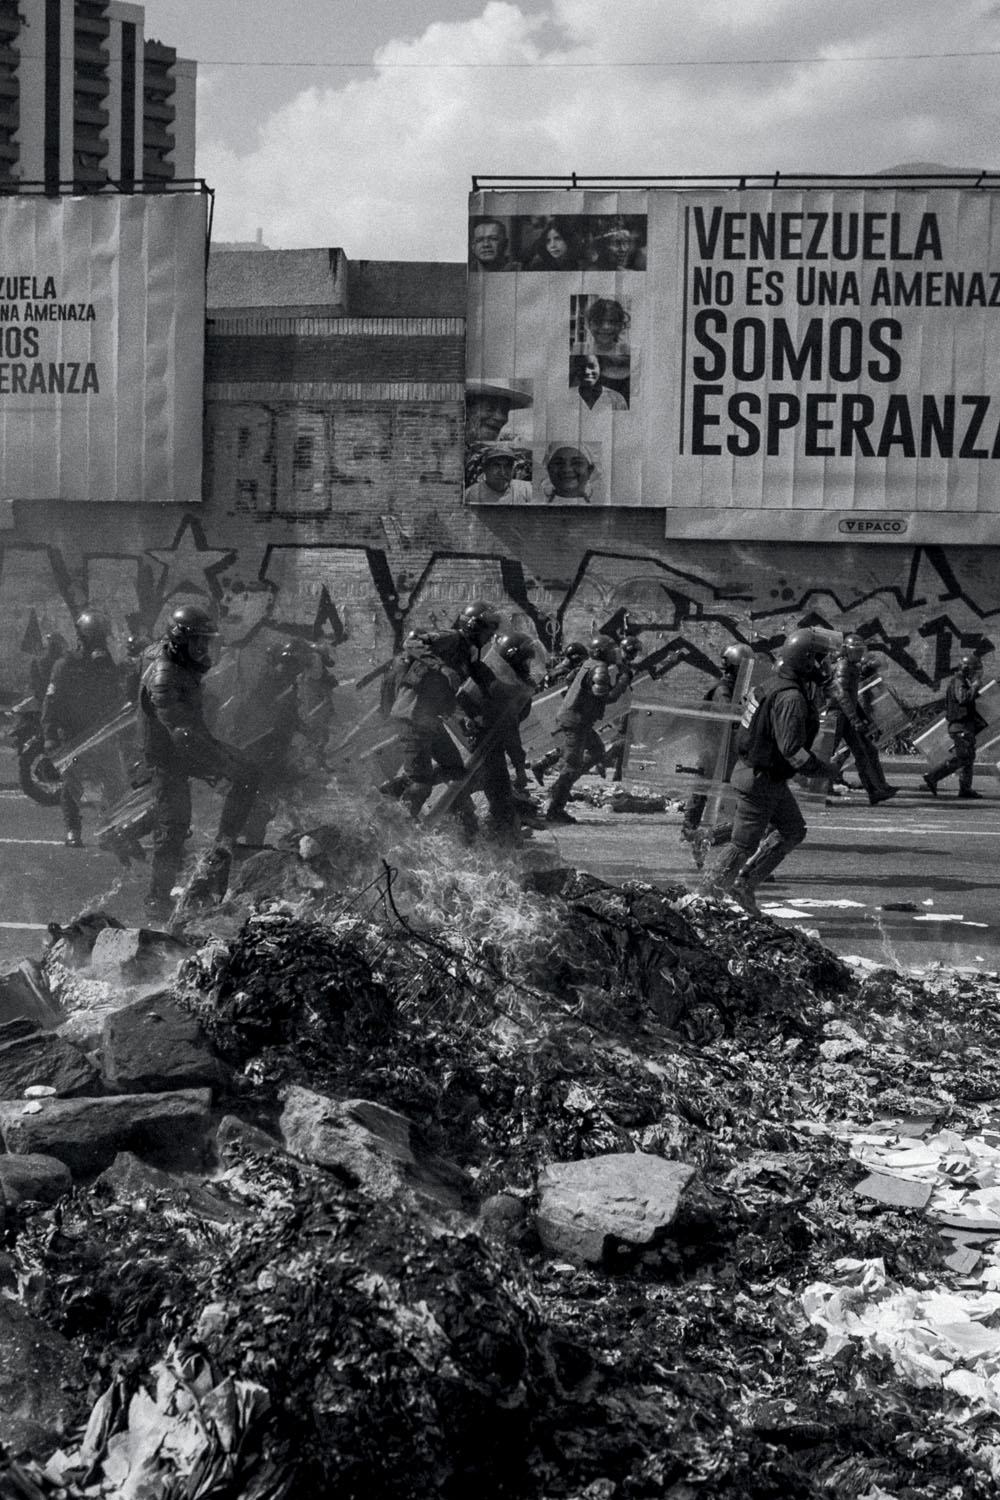 Photograph by Fabiola Ferrero. Opposition demonstrations in Caracas. April 2017.